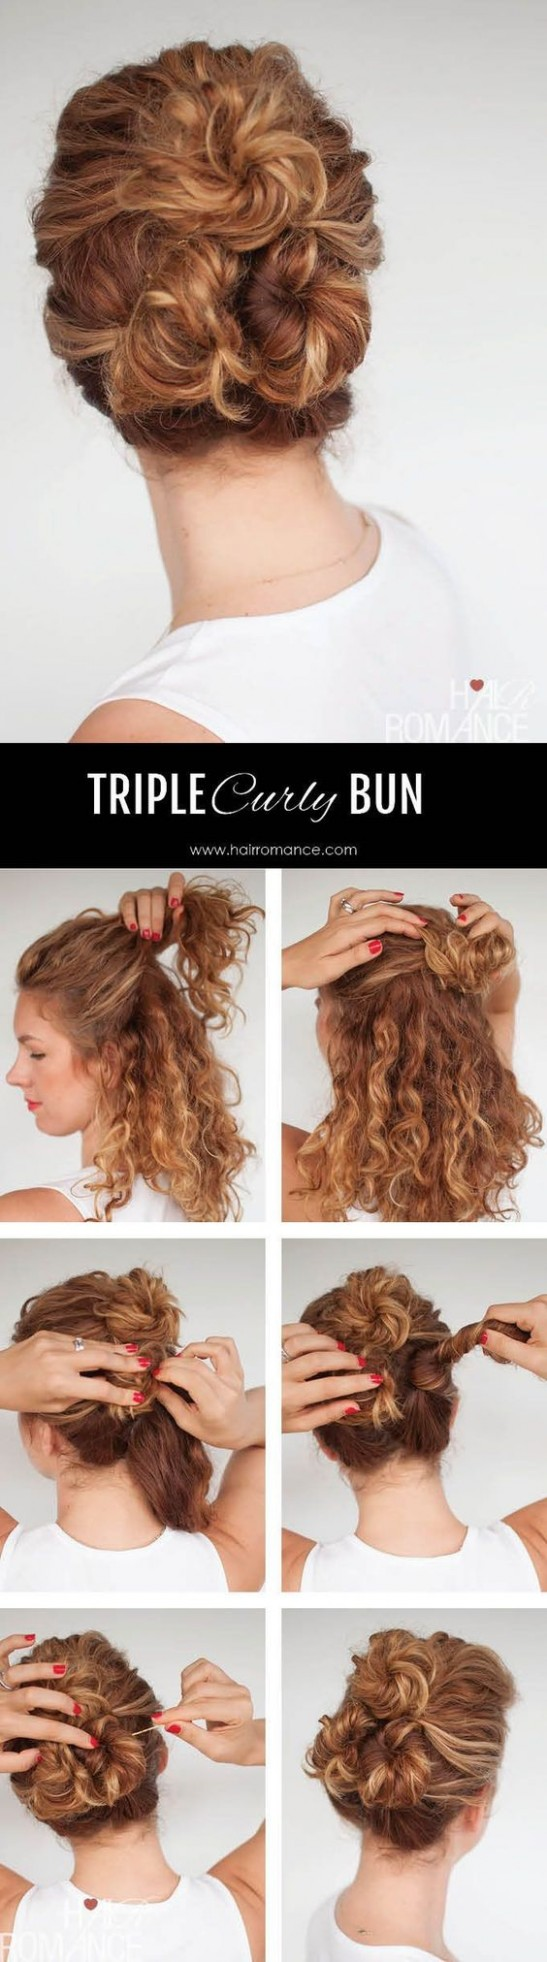 10 Hairstyles To Tame Frizzy Or Curly Hair Stay At Home Mum Easy Hairstyles For Curly Frizzy Hair